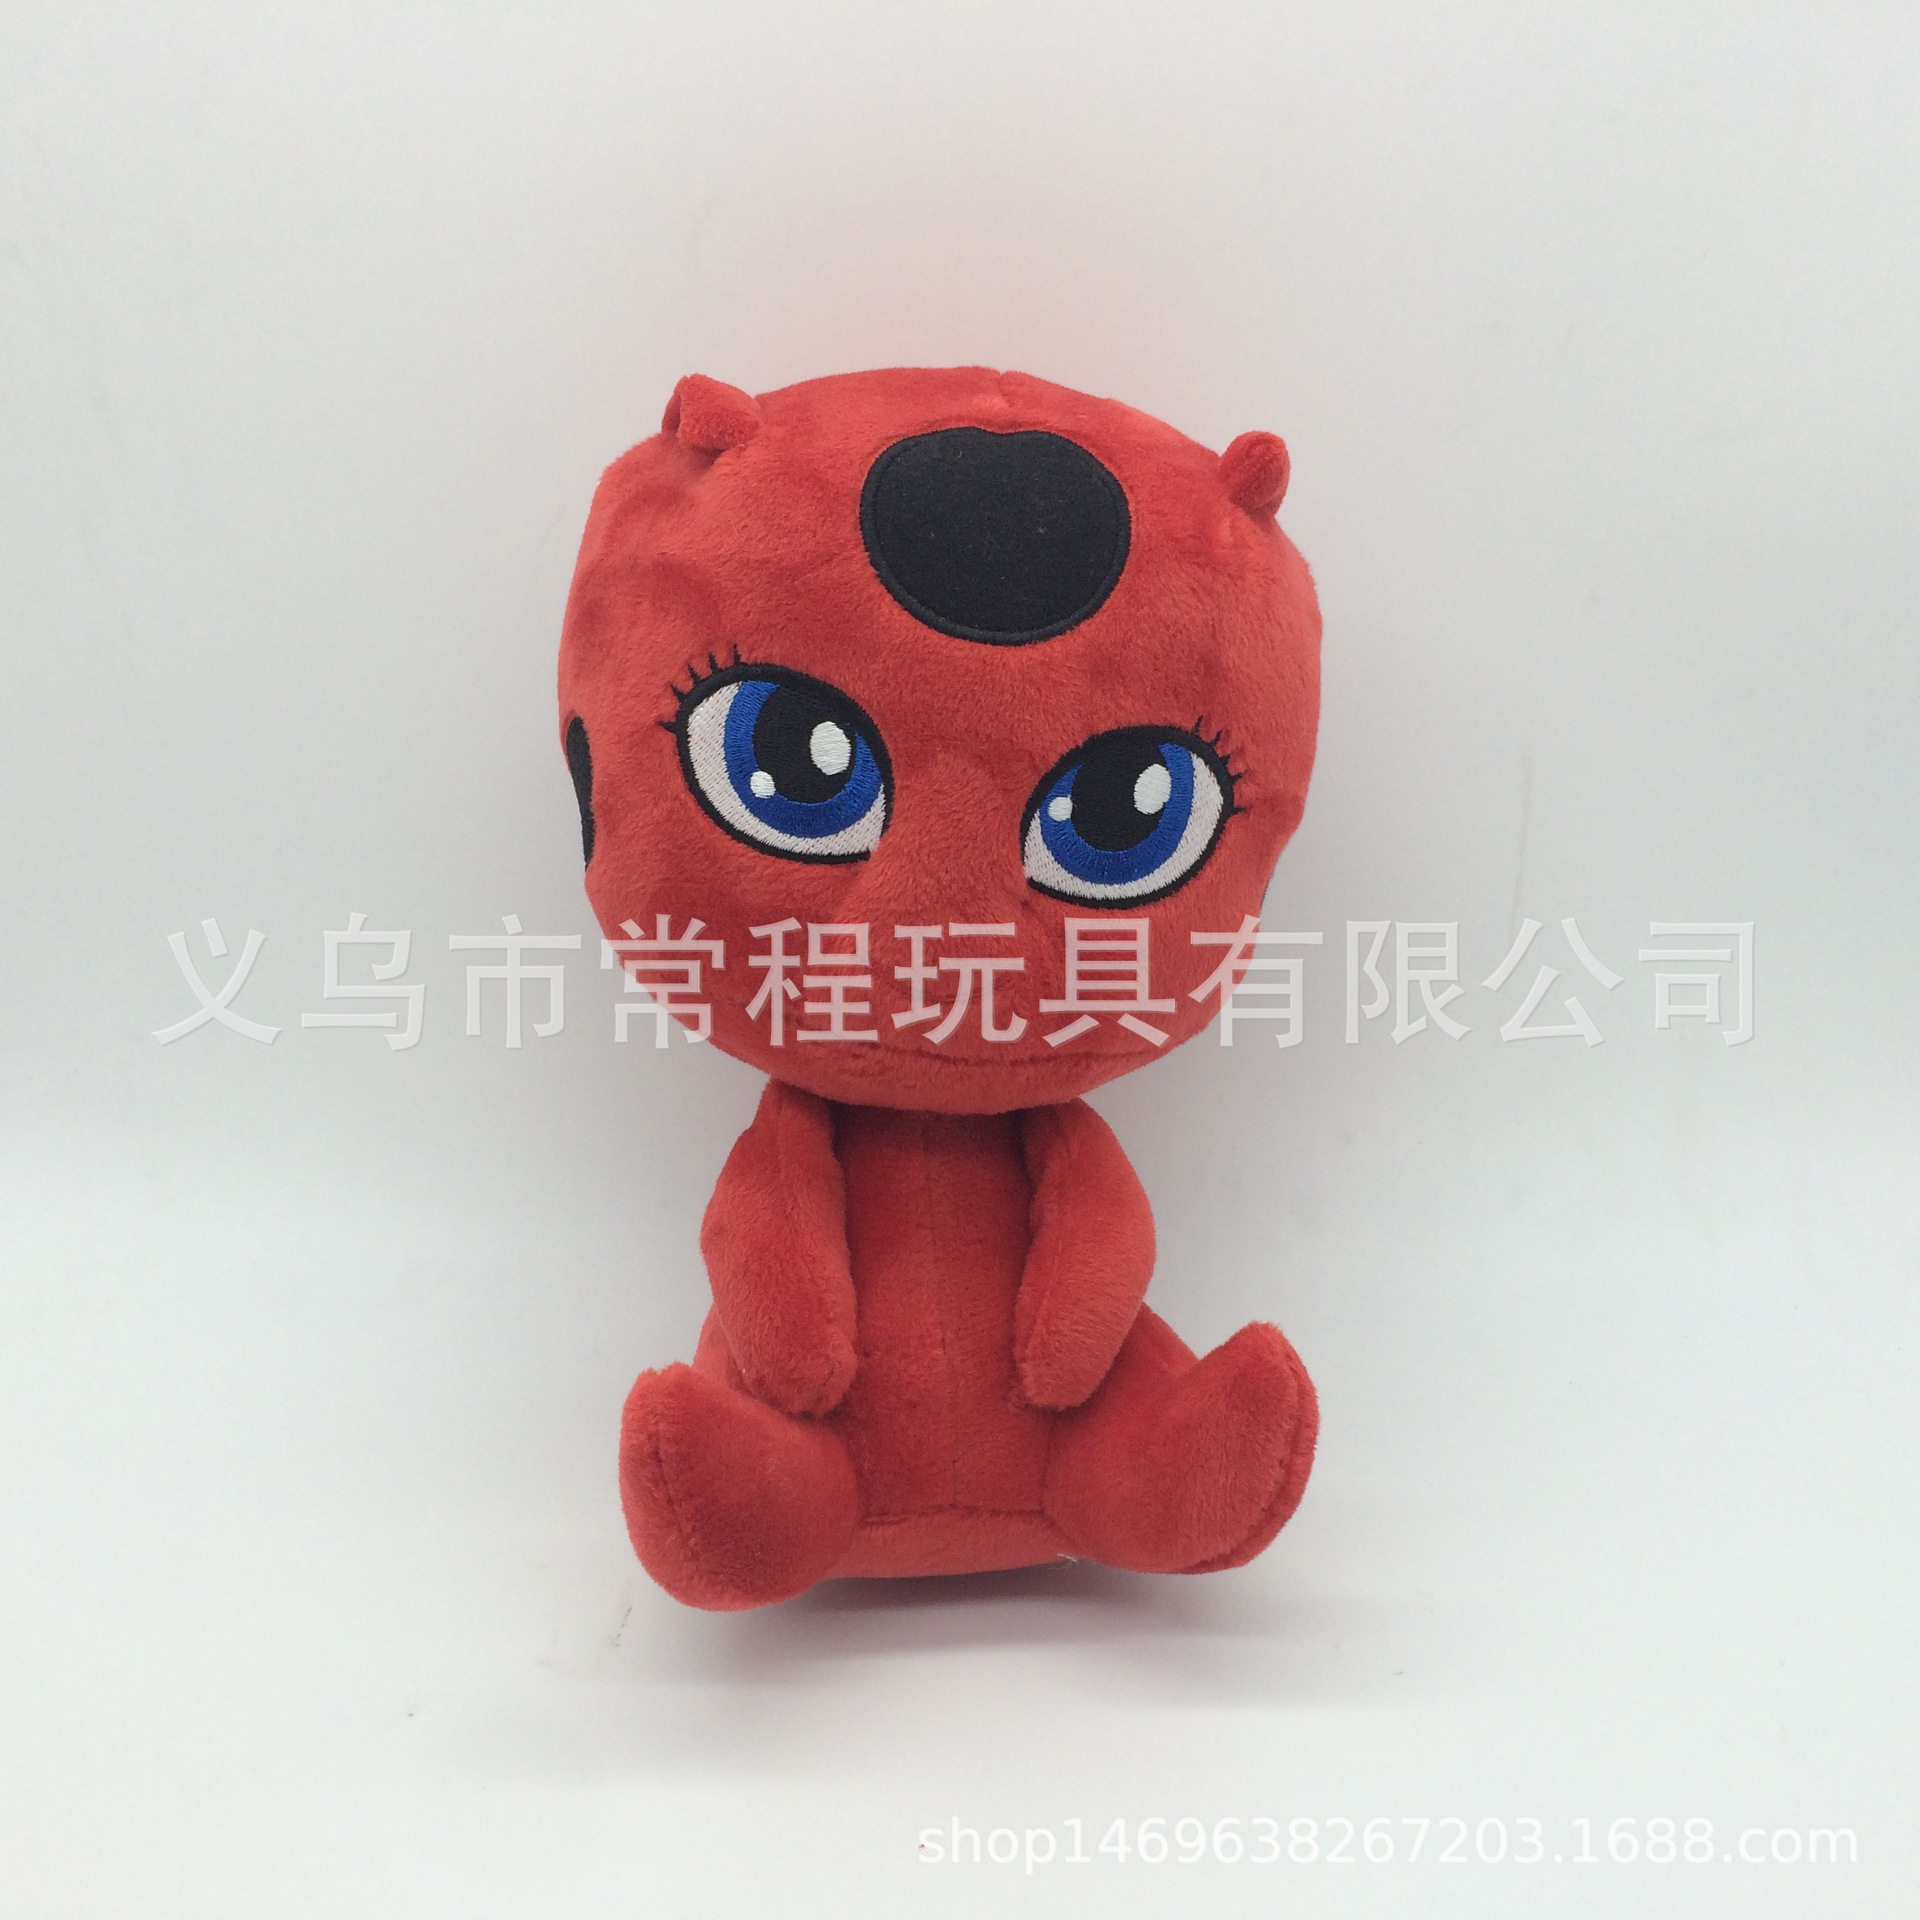 Fluffy Polypropylene Cotton Doll Keychain for Bag Accessories